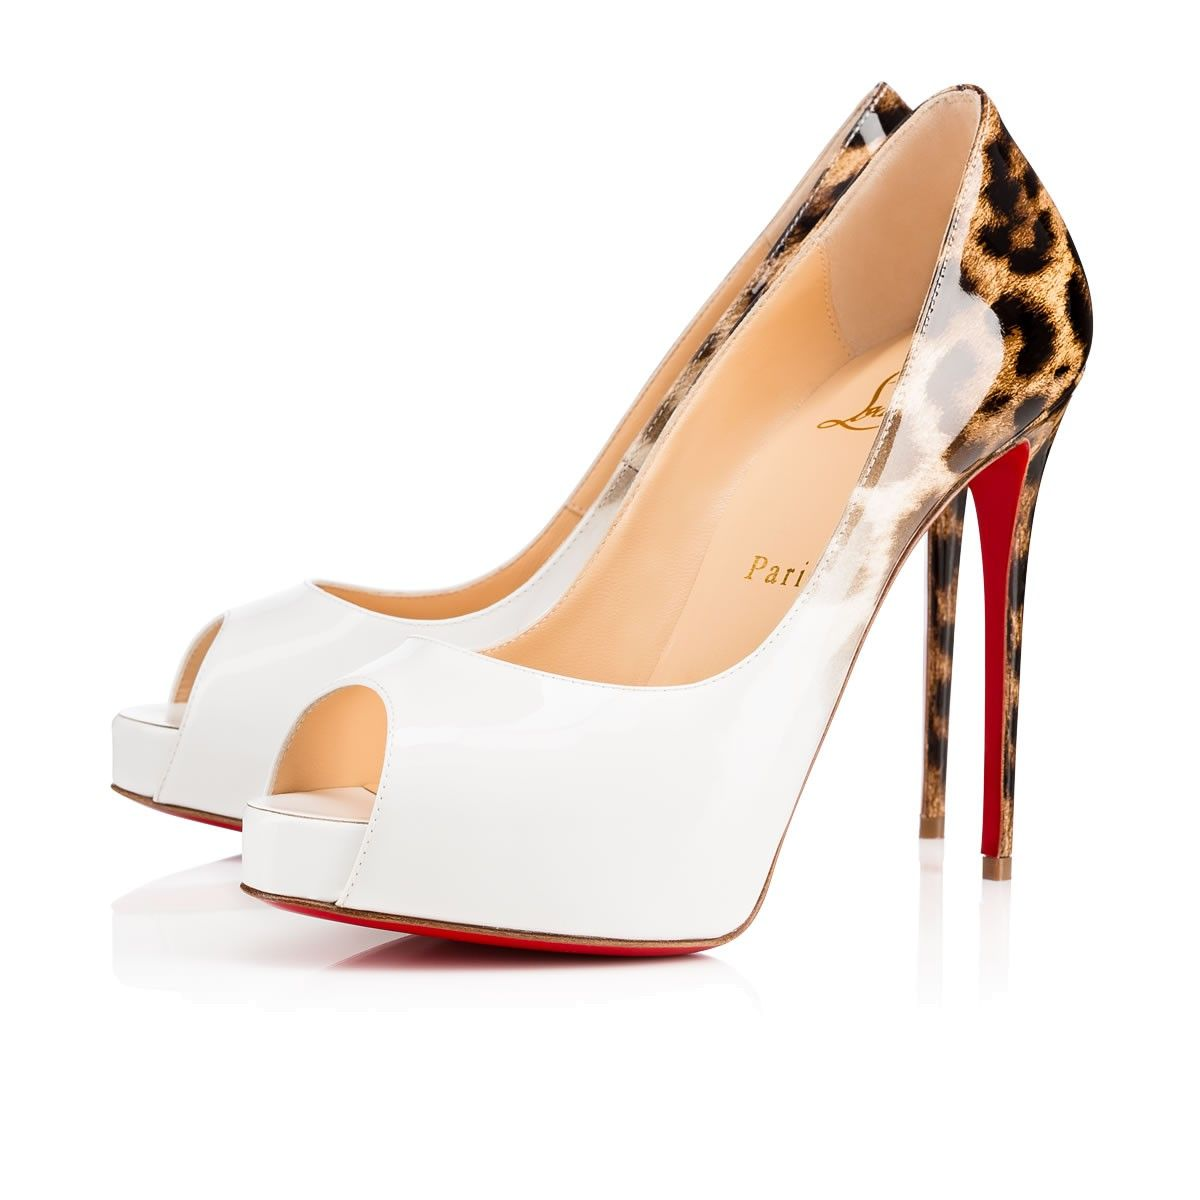 fe0d53ac59db CHRISTIAN LOUBOUTIN New Very Prive 120mm Latte-Leopard Patent Leather.   christianlouboutin  shoes